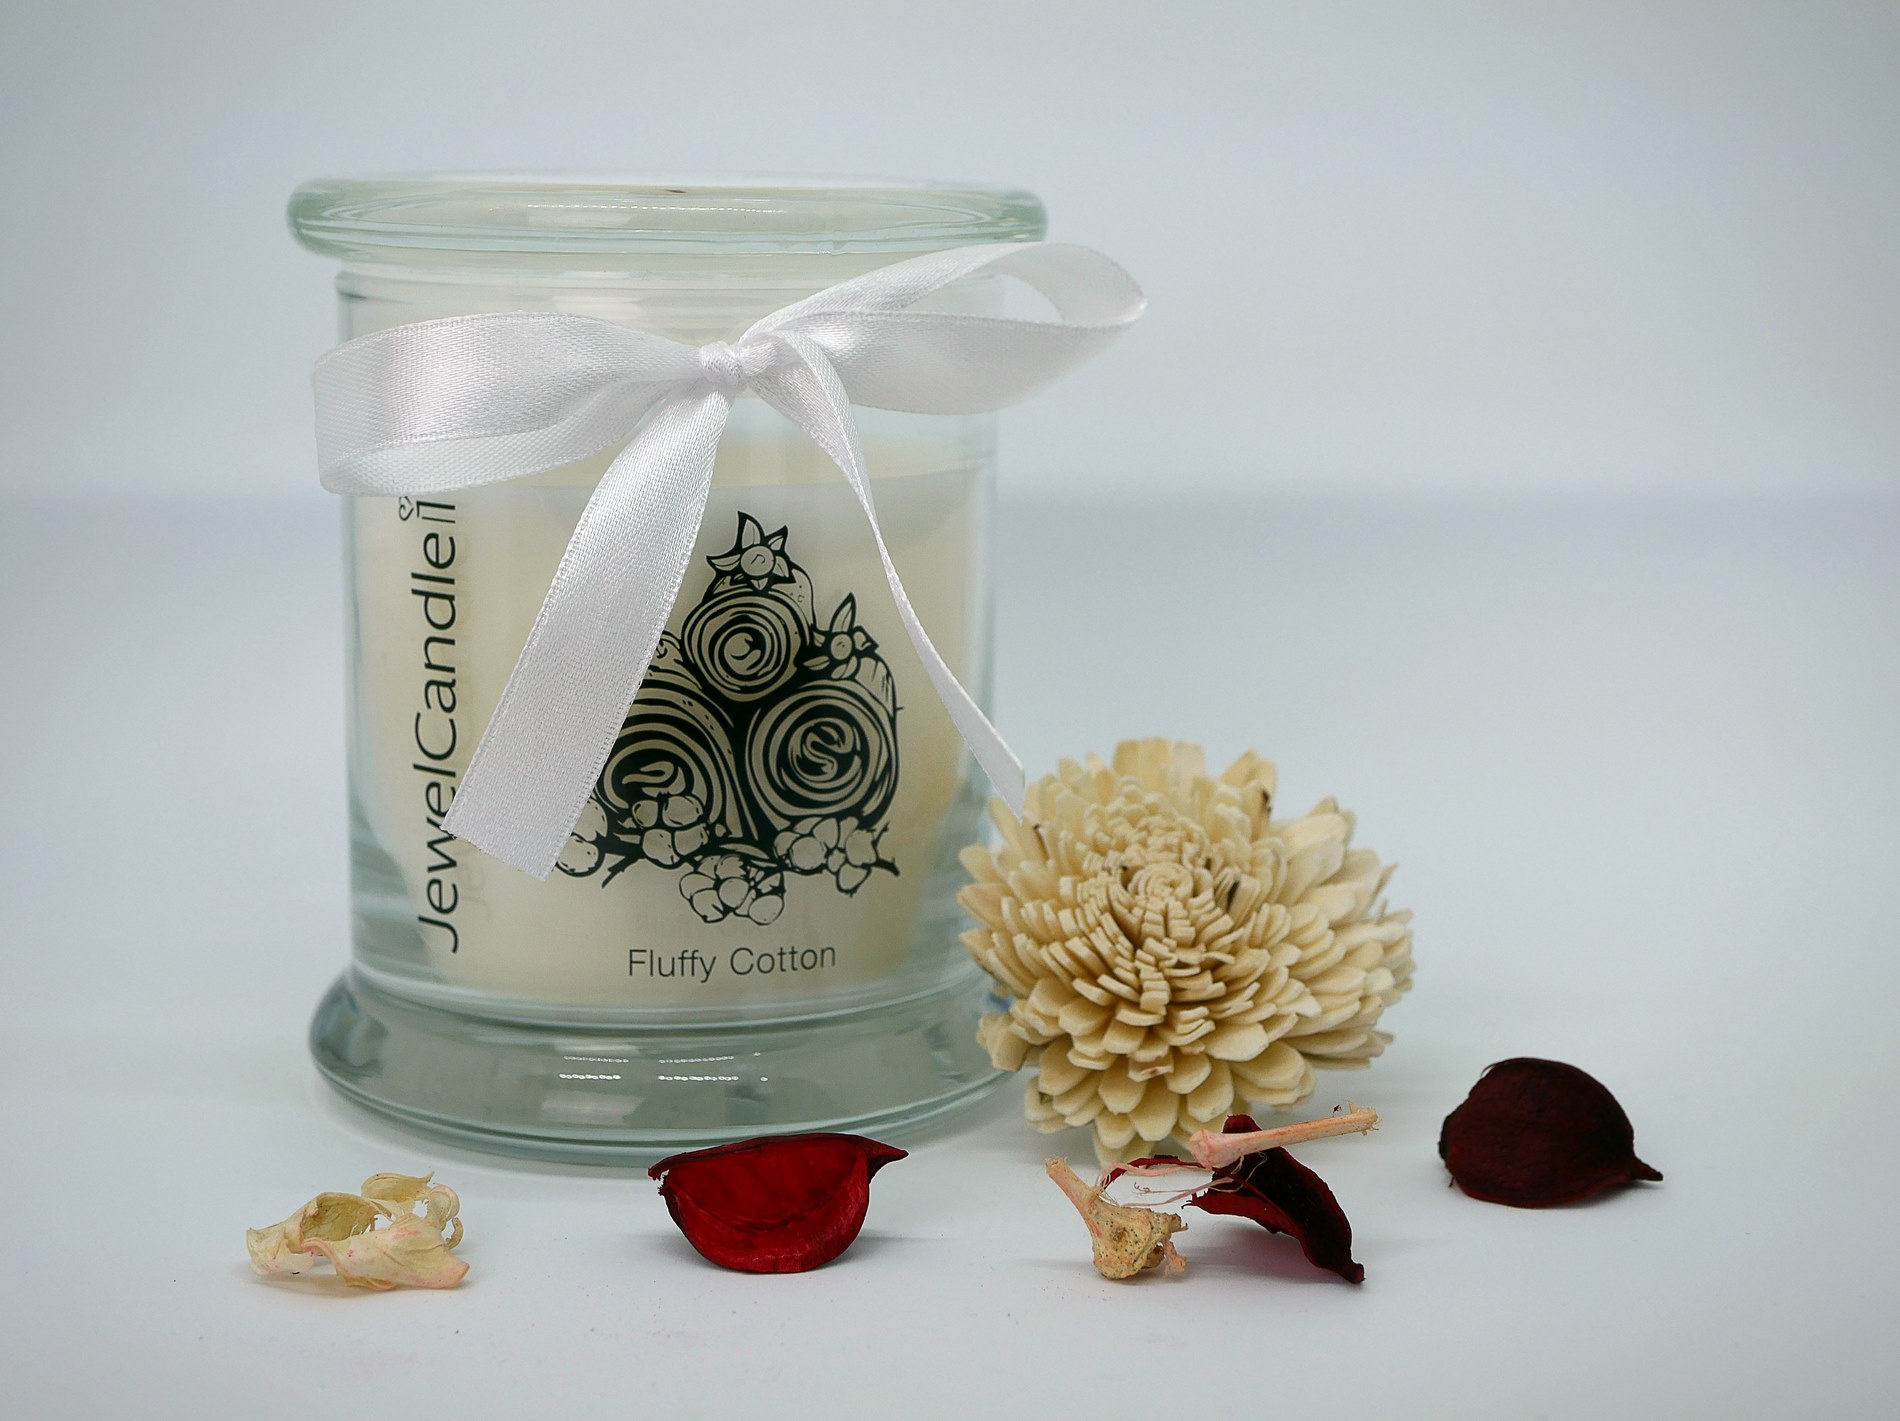 test jewelcandle - juliesliberties